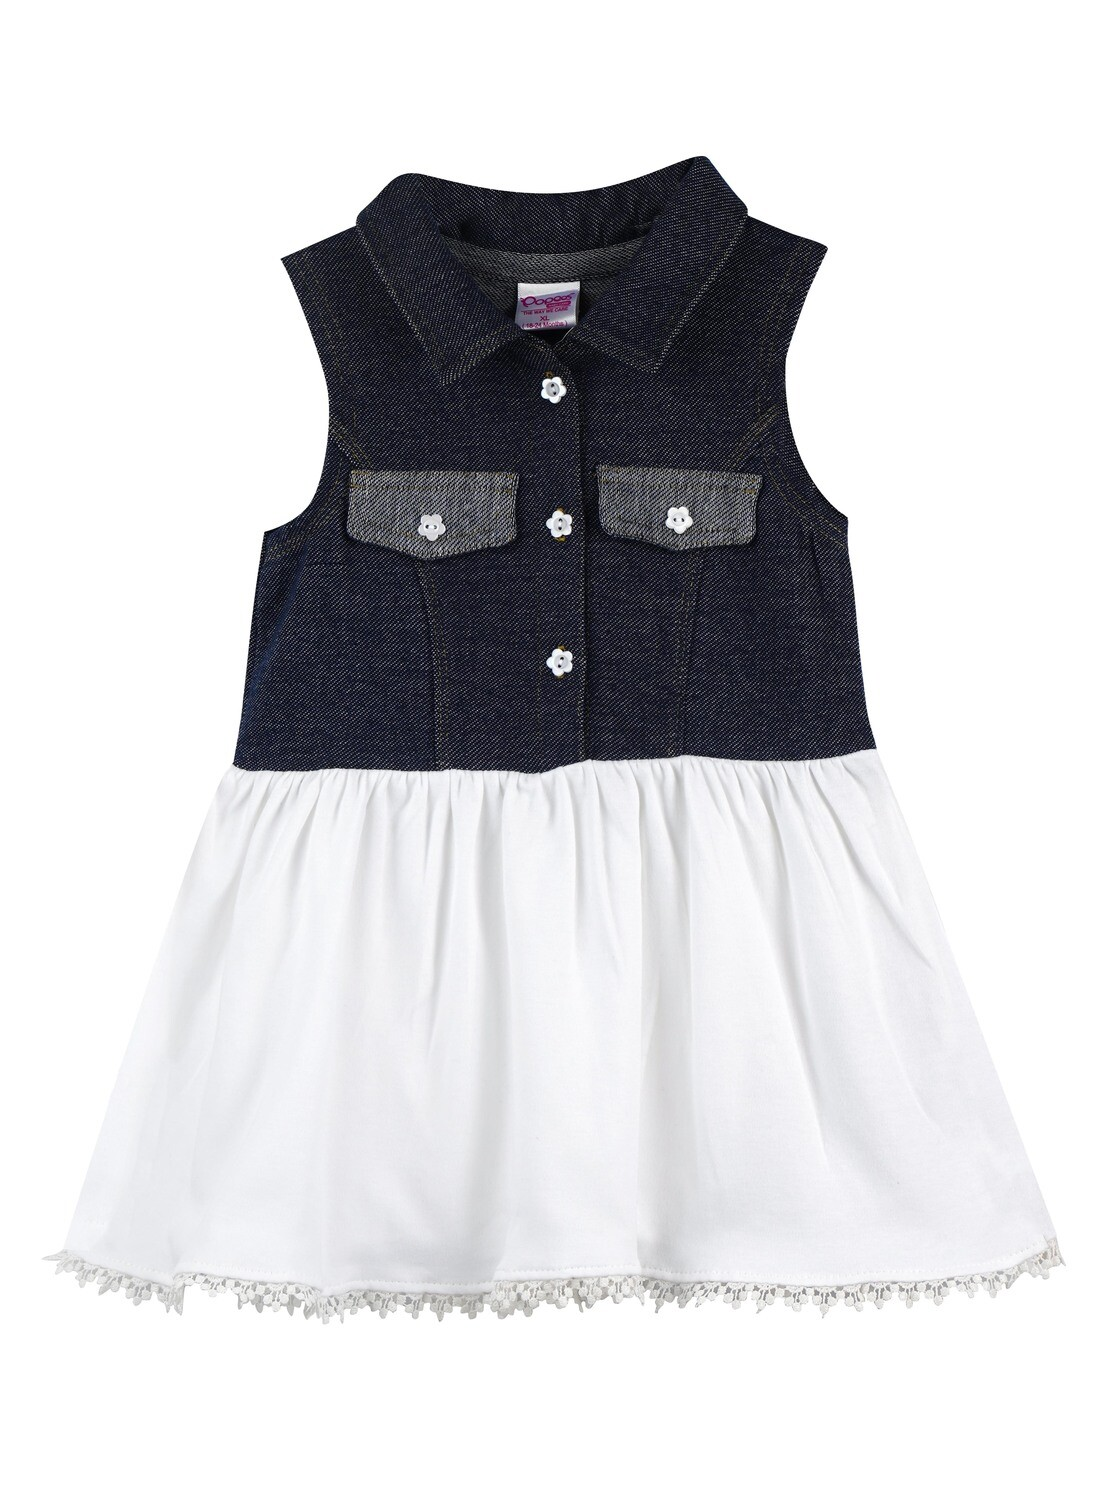 VAANI Navy Blue Sleeveless Frock and Panties for Baby Girls